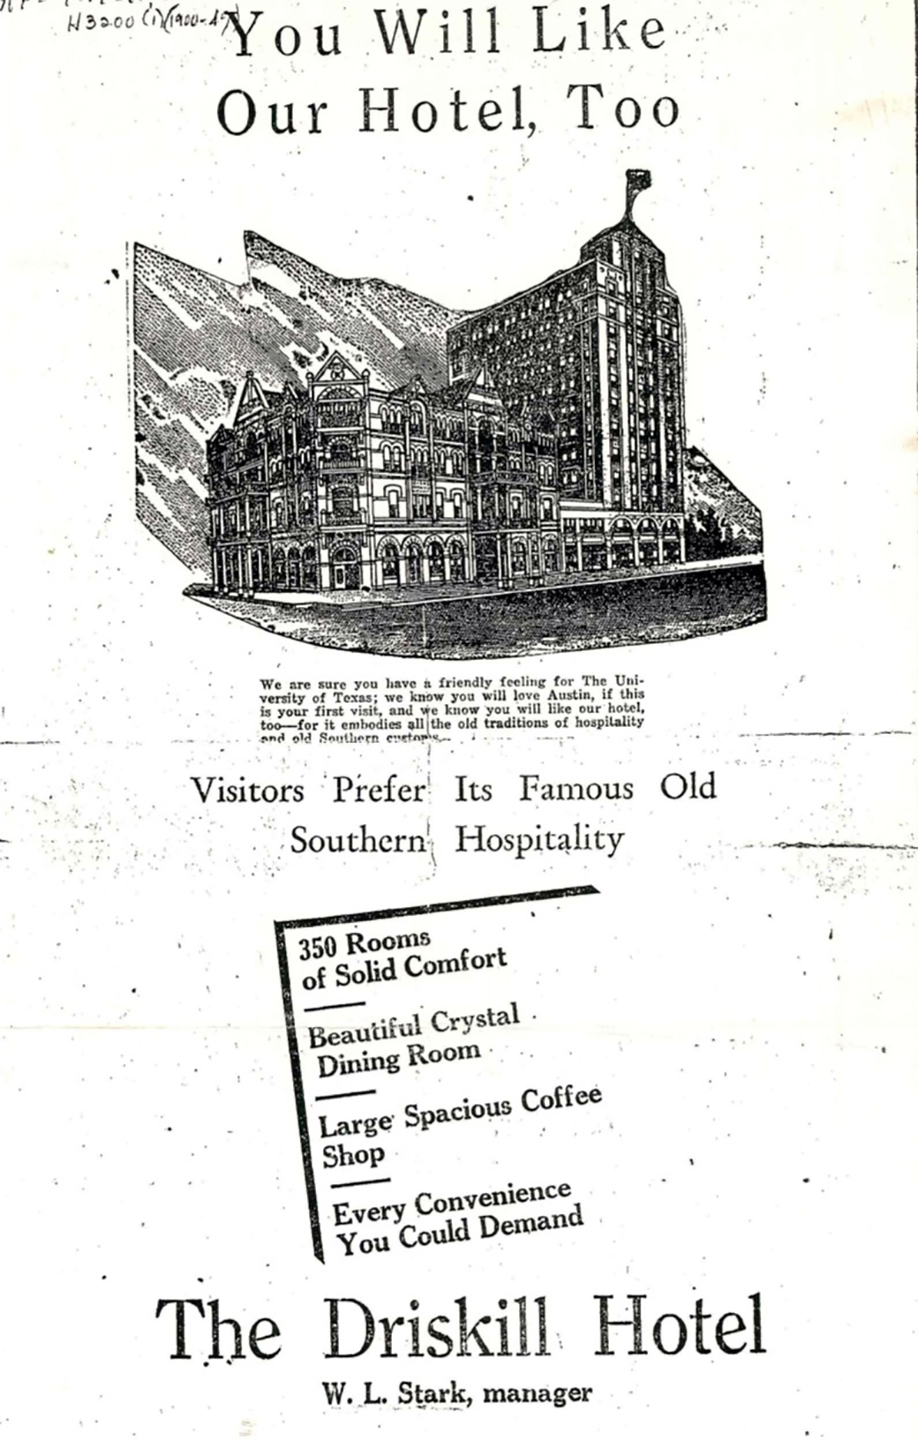 1930s advertisement for the Driskill Hotel in Austin, Texas